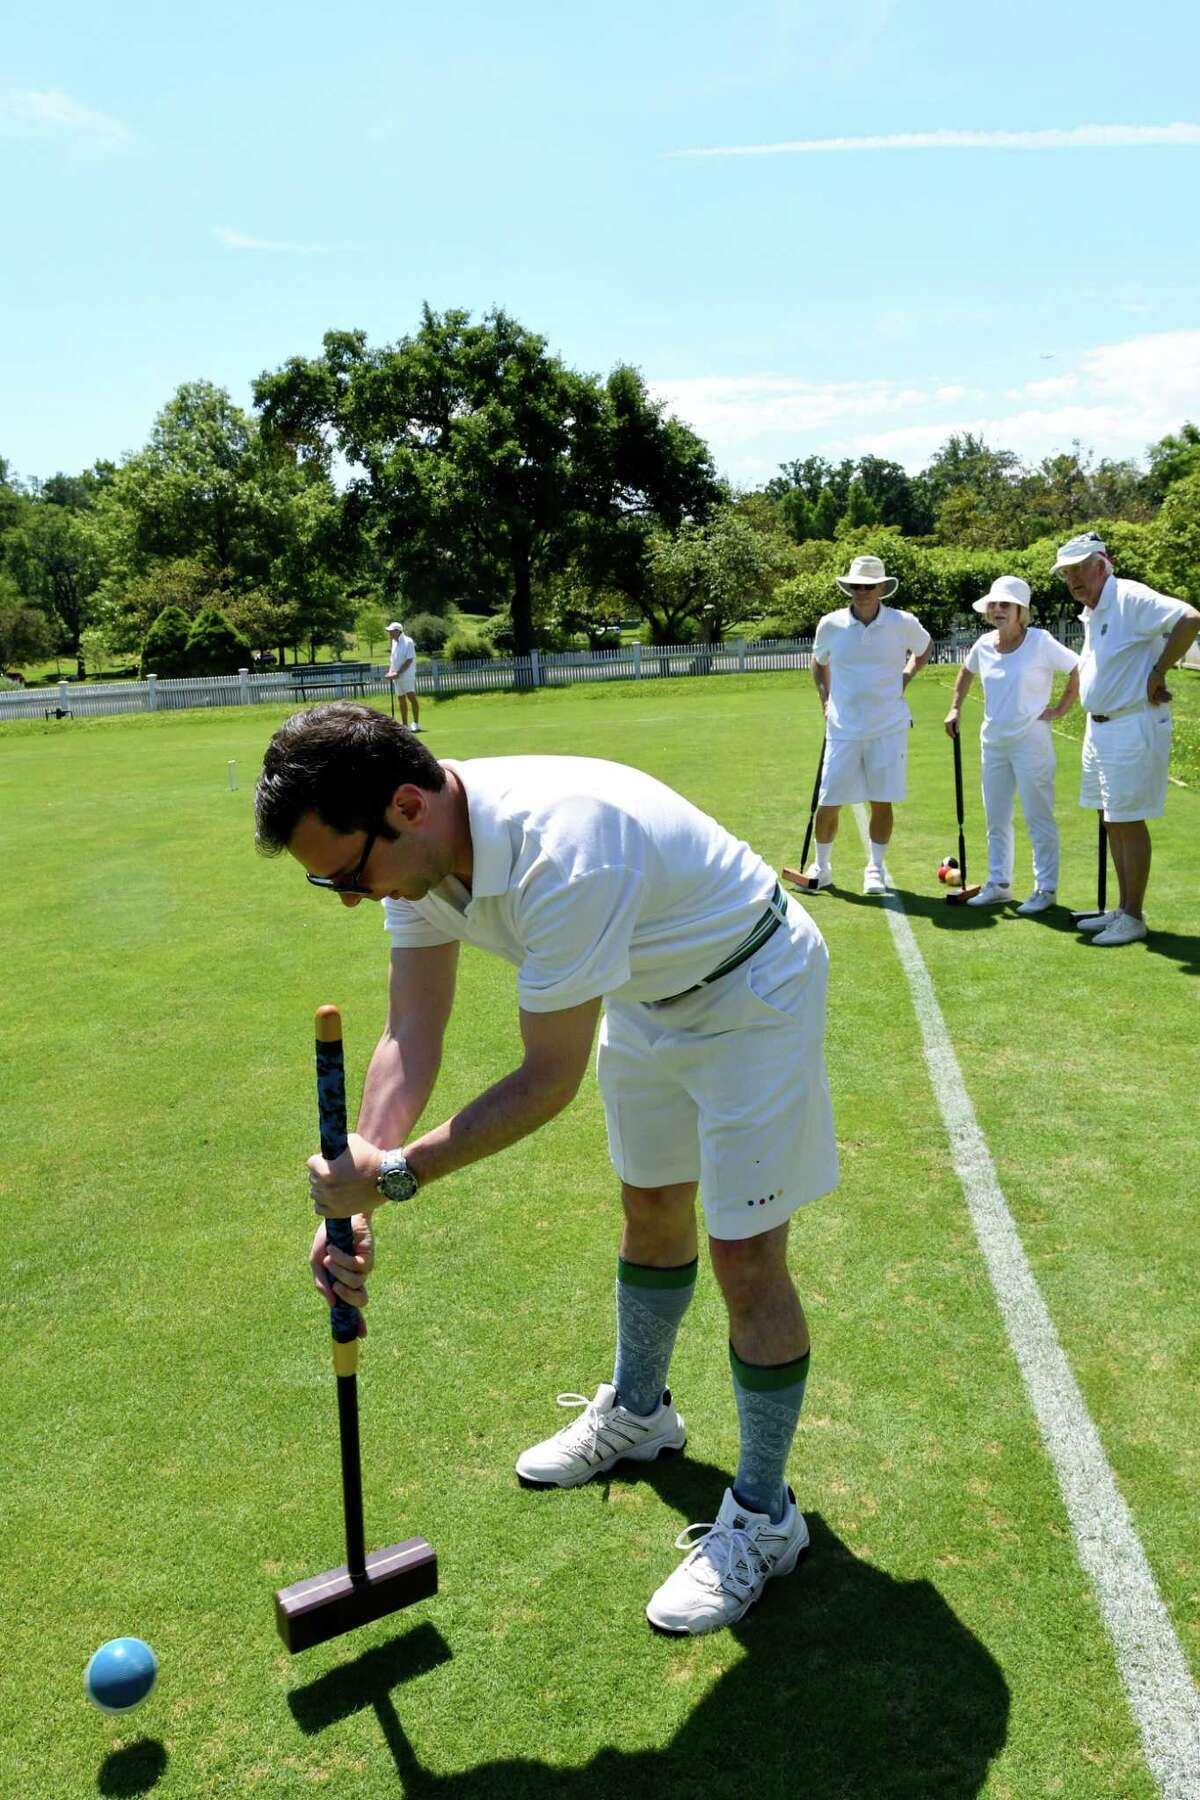 Club president Matthew Rimi launches a ball during a practice match in Greenwich recently.